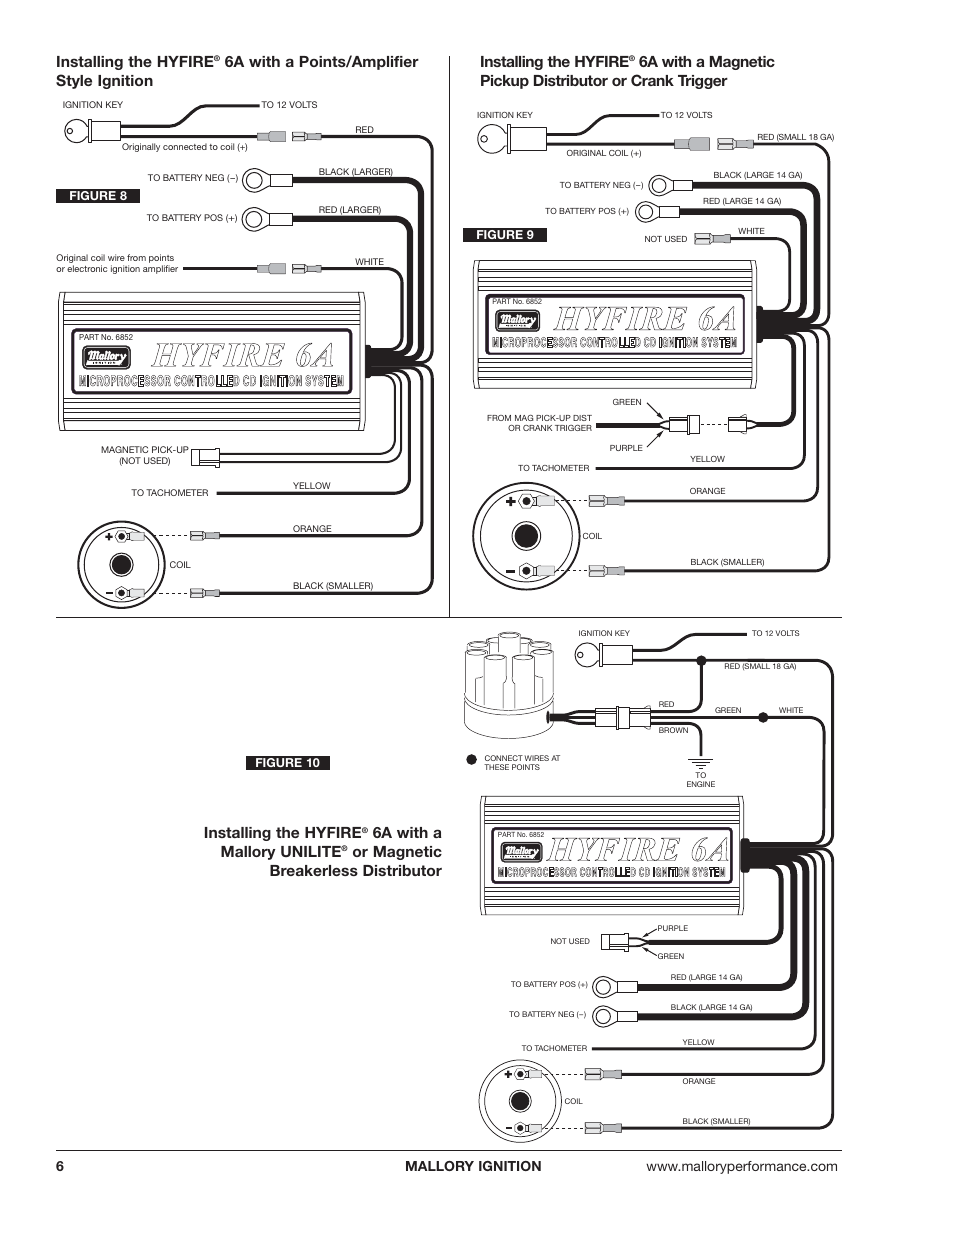 mallory hyfire 6a wiring diagram house wiring diagram symbols u2022 rh maxturner co Mallory 6AL Wiring-Diagram Mallory High Fire Wiring-Diagram Edi